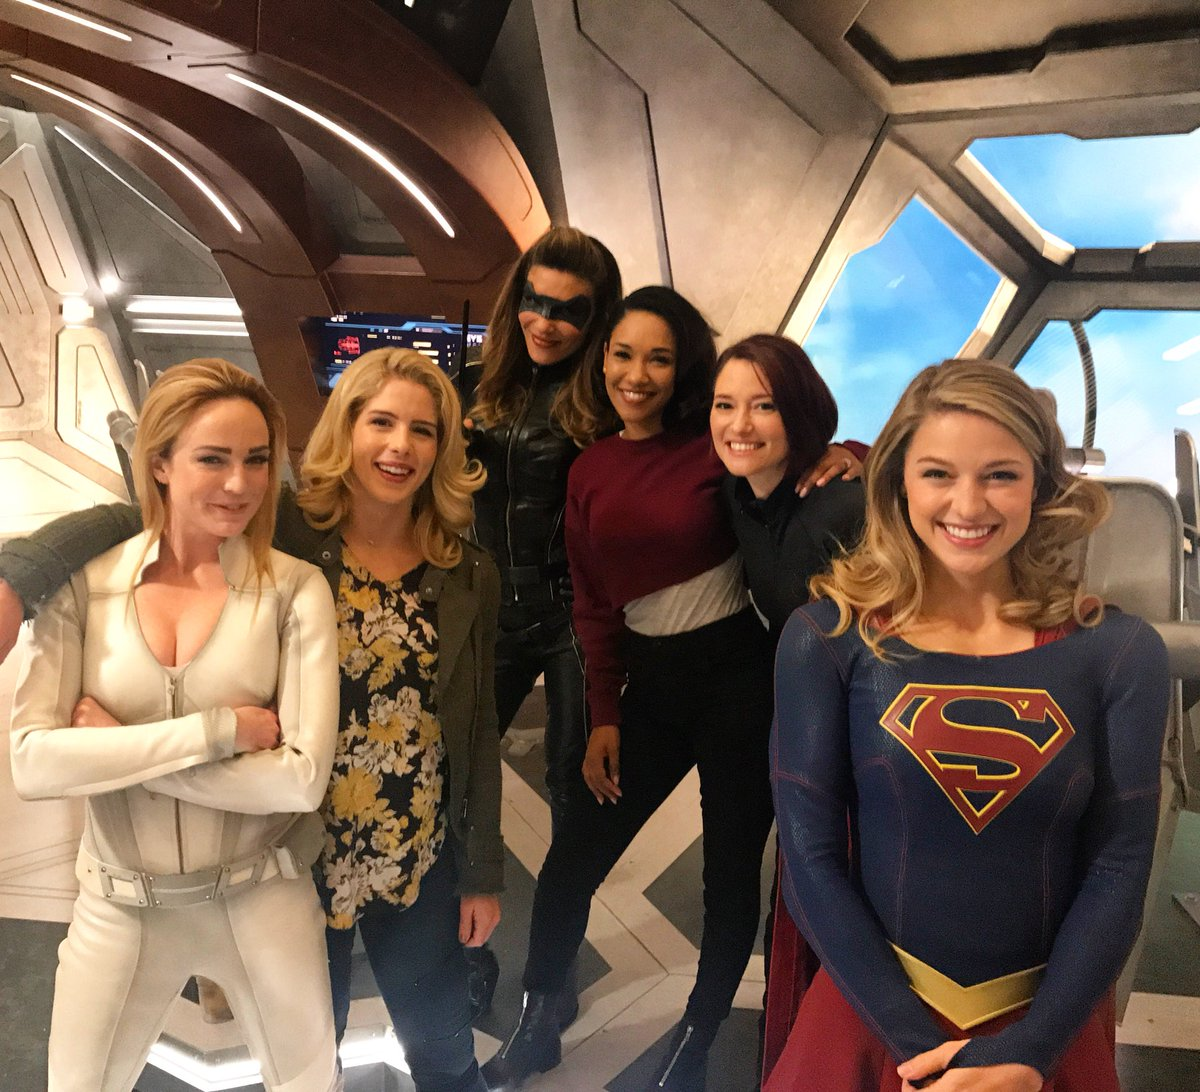 RT @caitylotz: Sup fresh🙌🤩 crossovers are coming https://t.co/lhlSv4Qly8